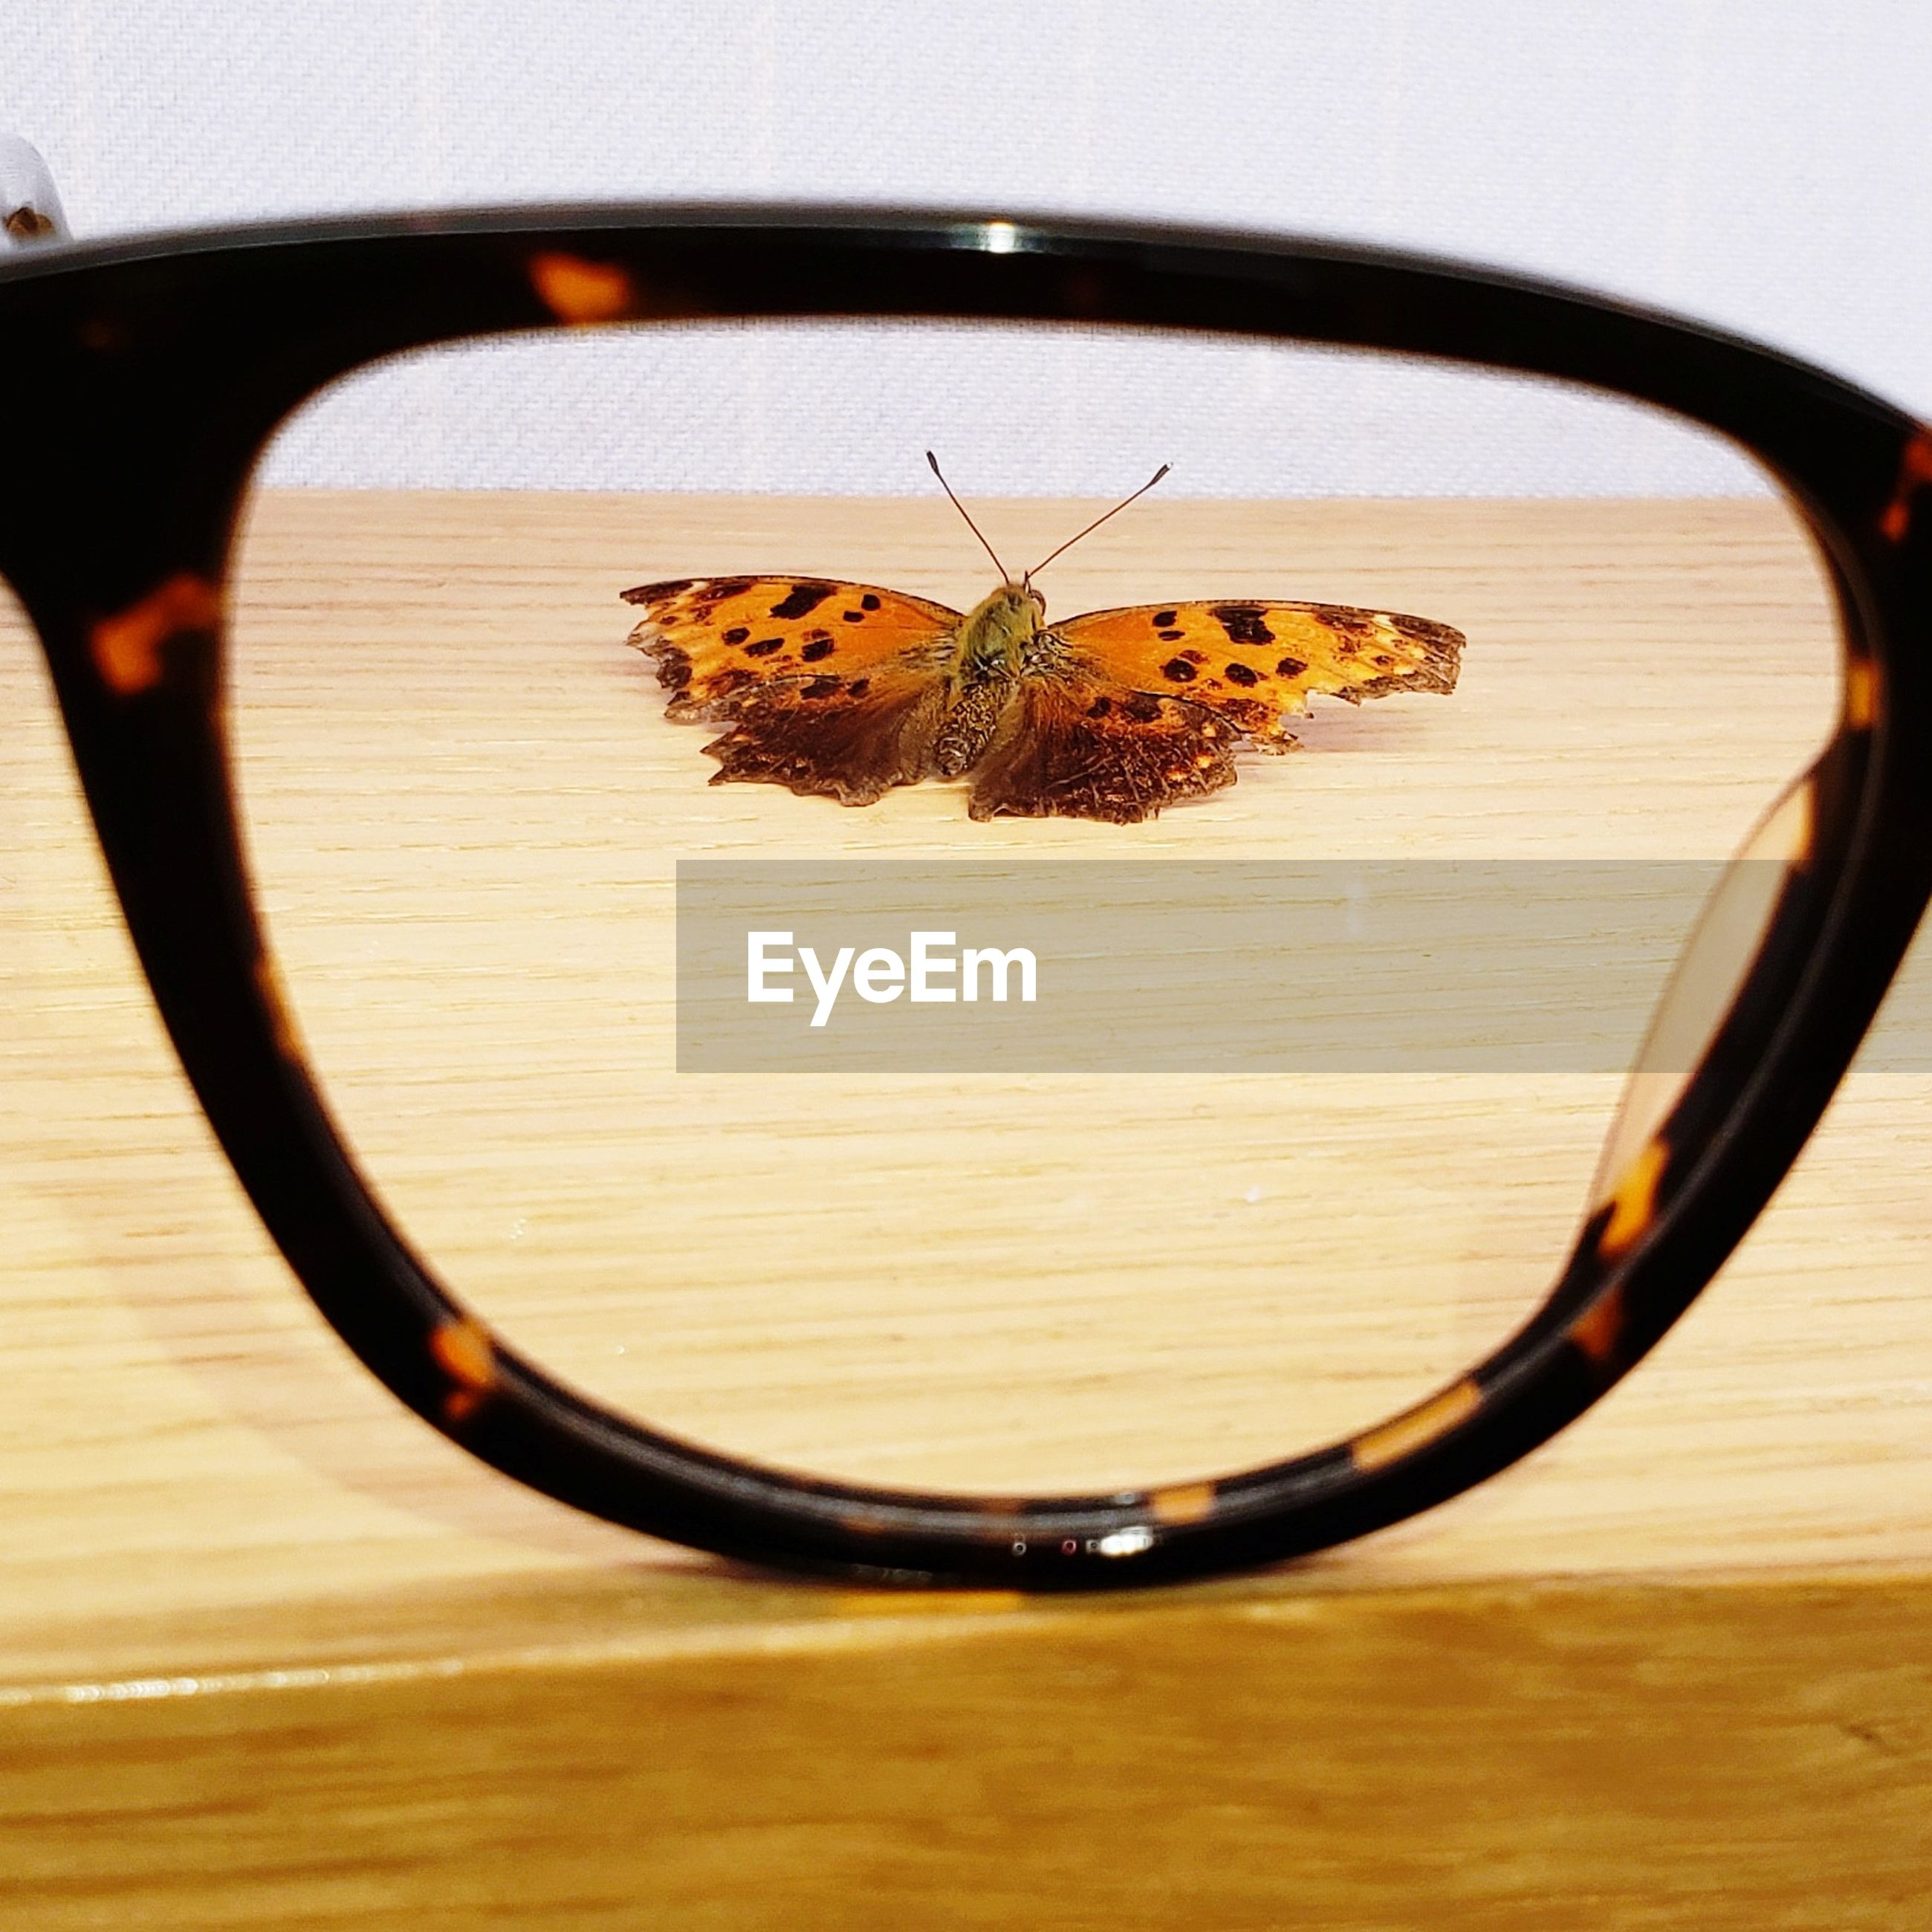 Butterfly on table seen through eyeglasses